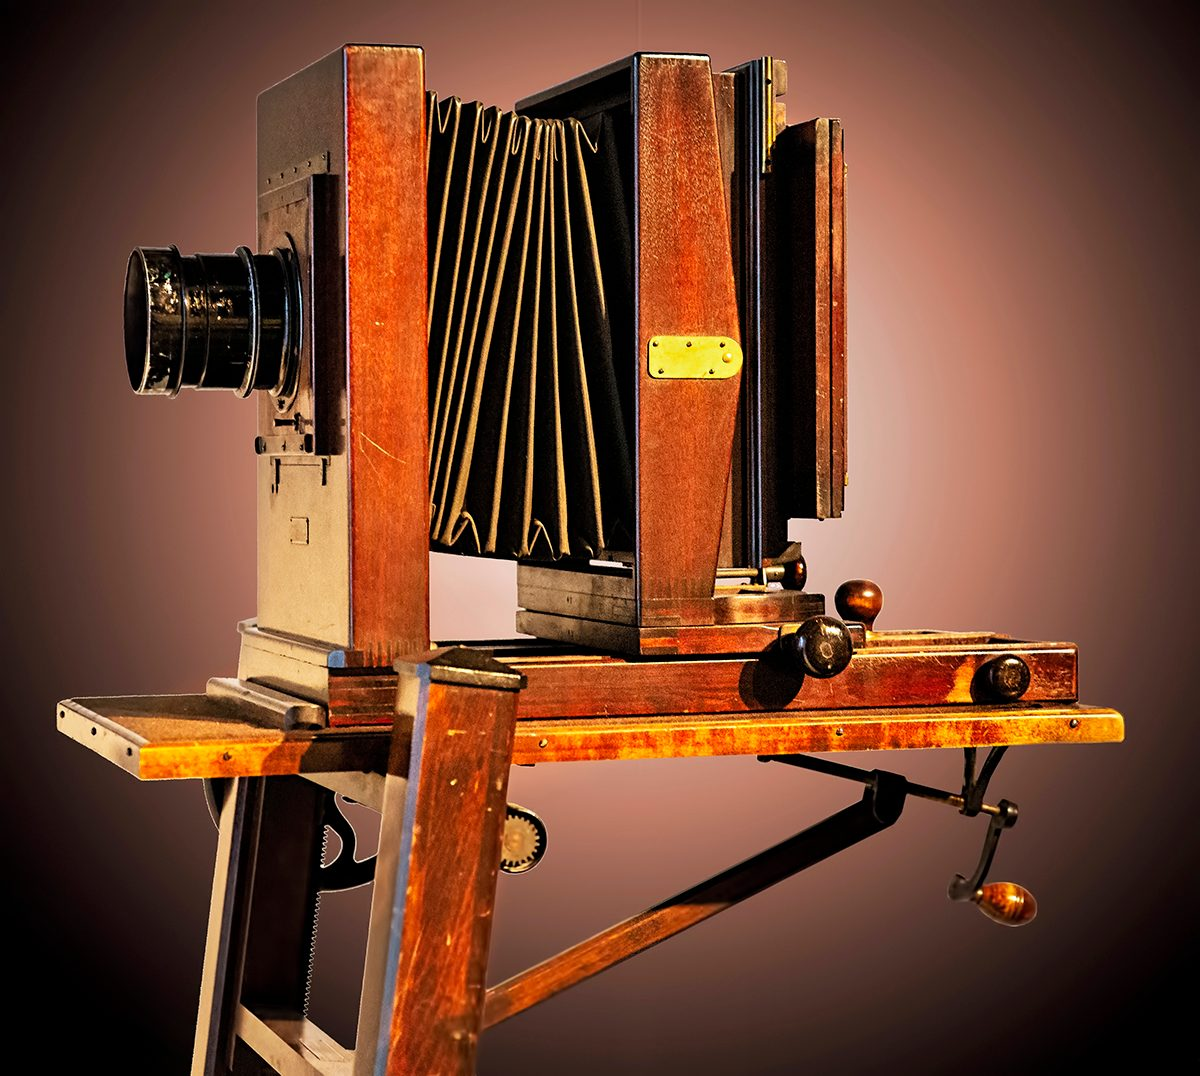 Canadian history - antique camera